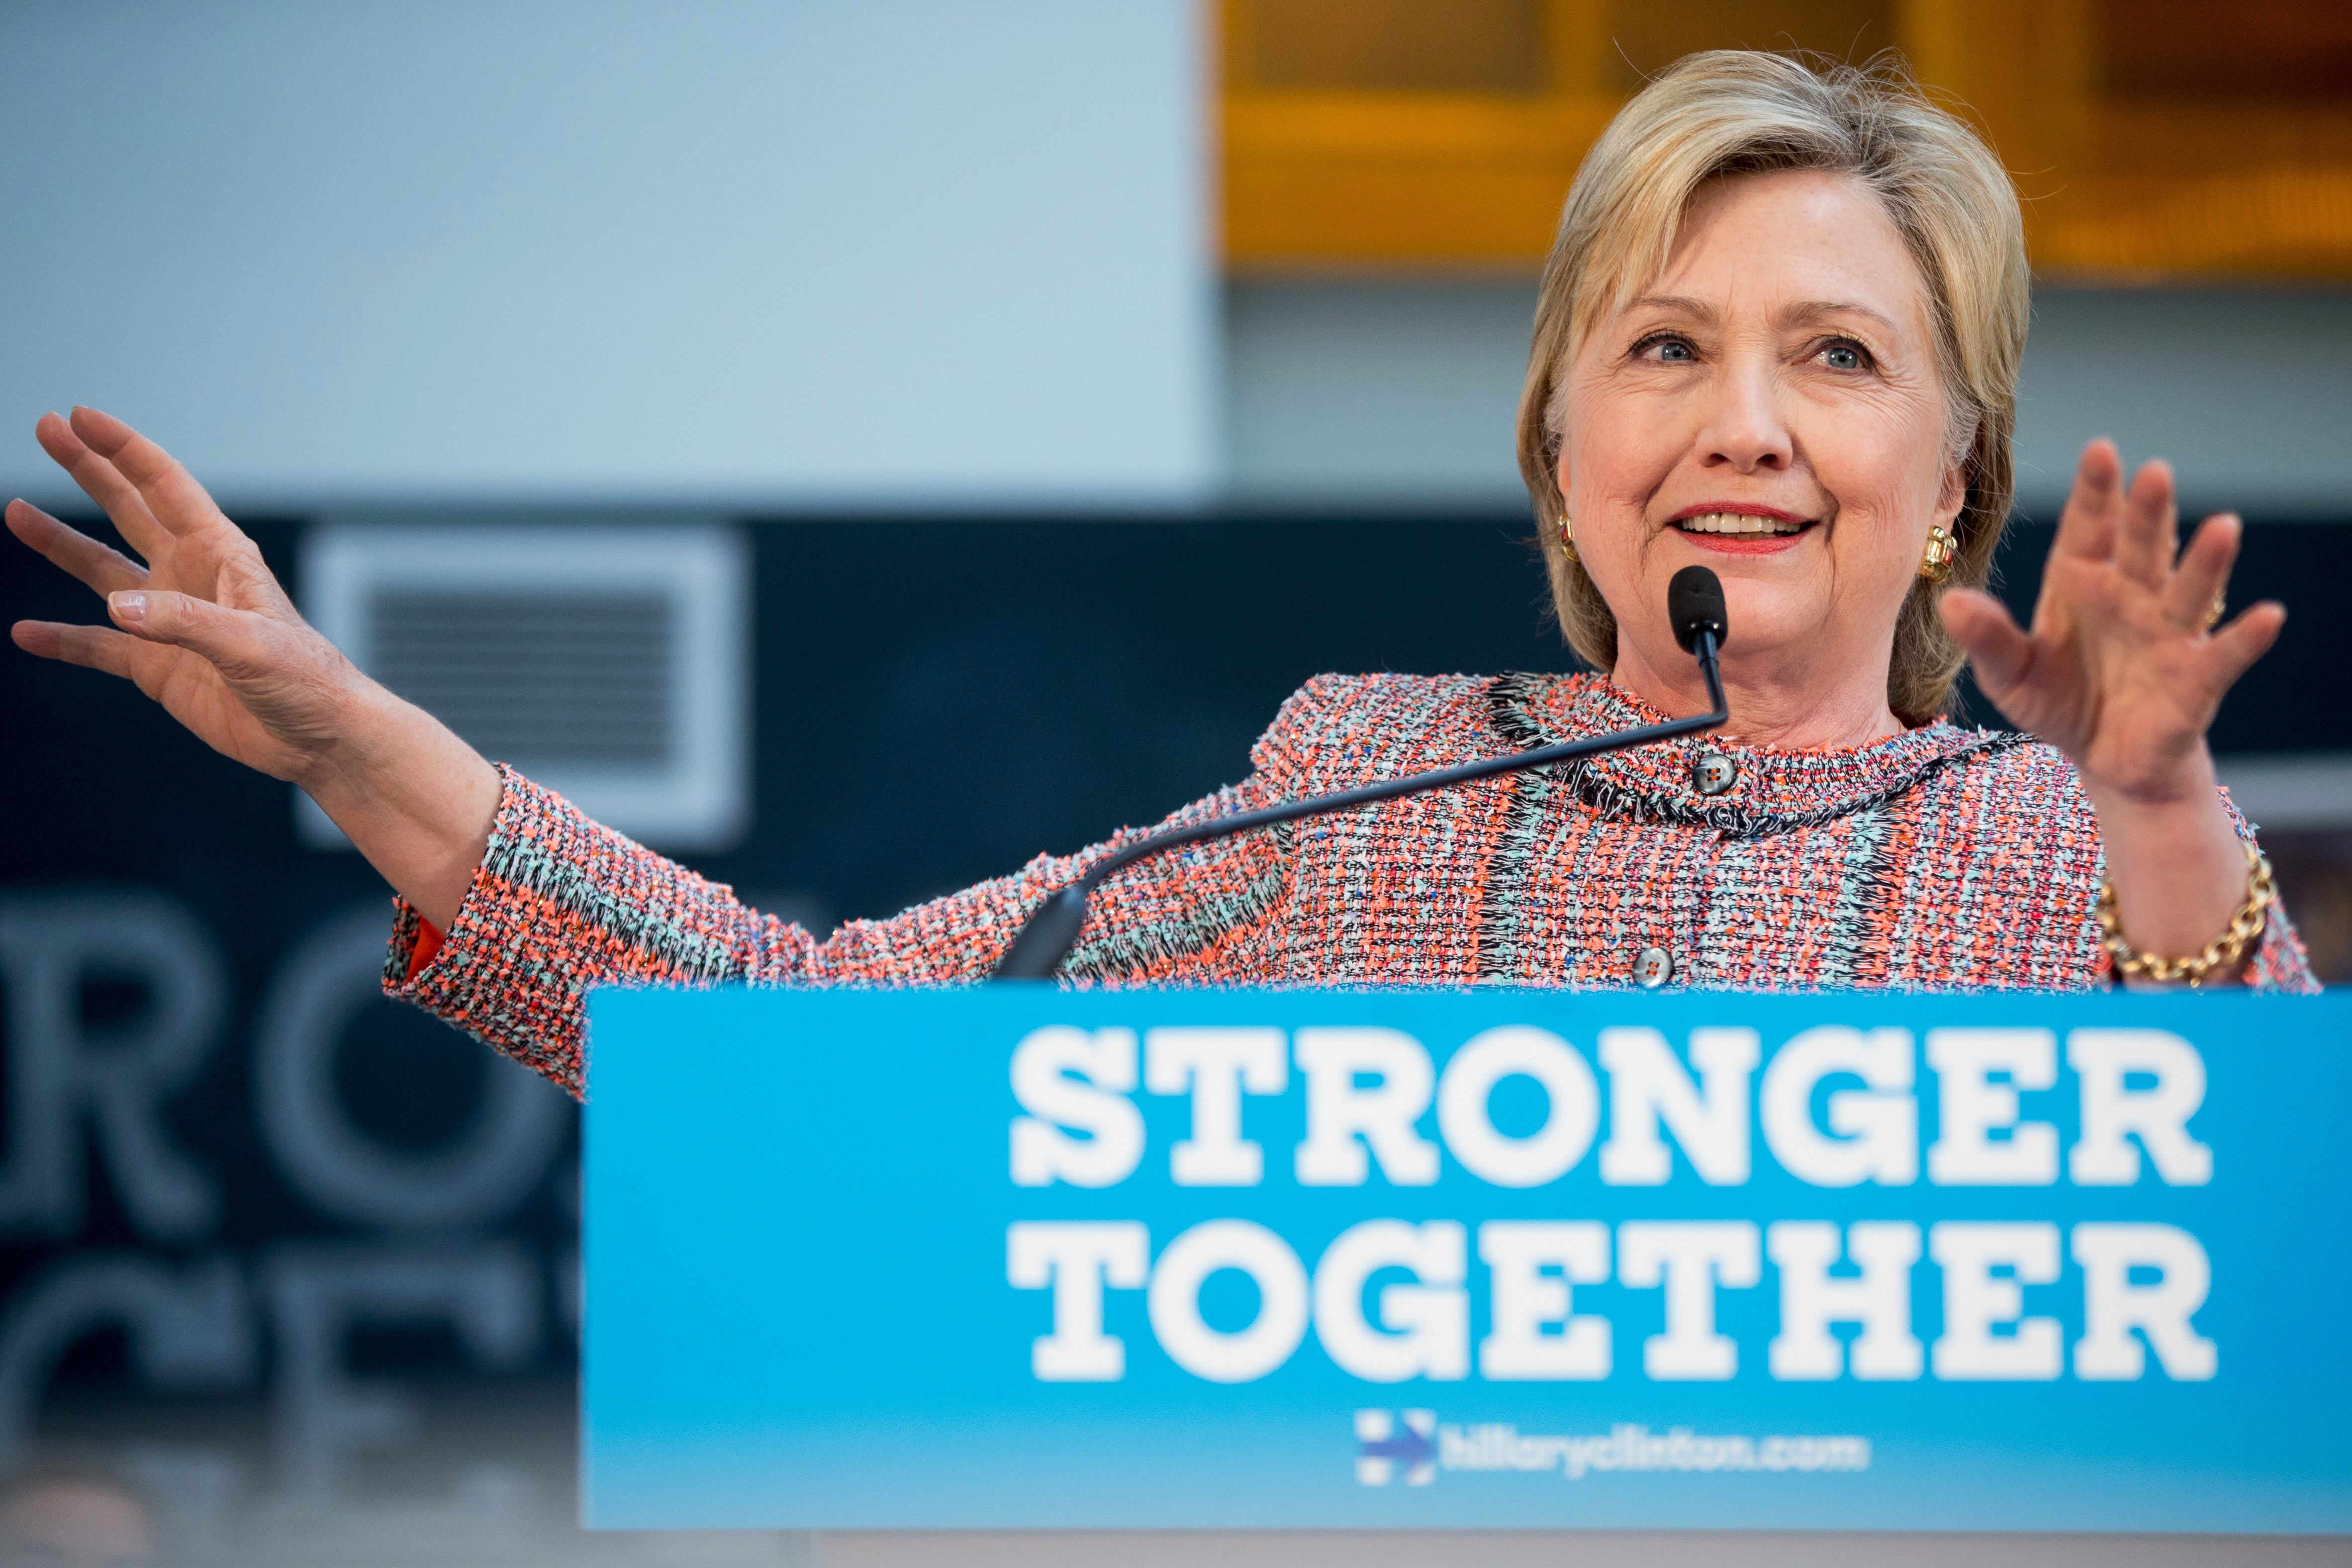 Photo: Hillary Clinton Campaigns In Denver, Day Benghazi Report Is Released